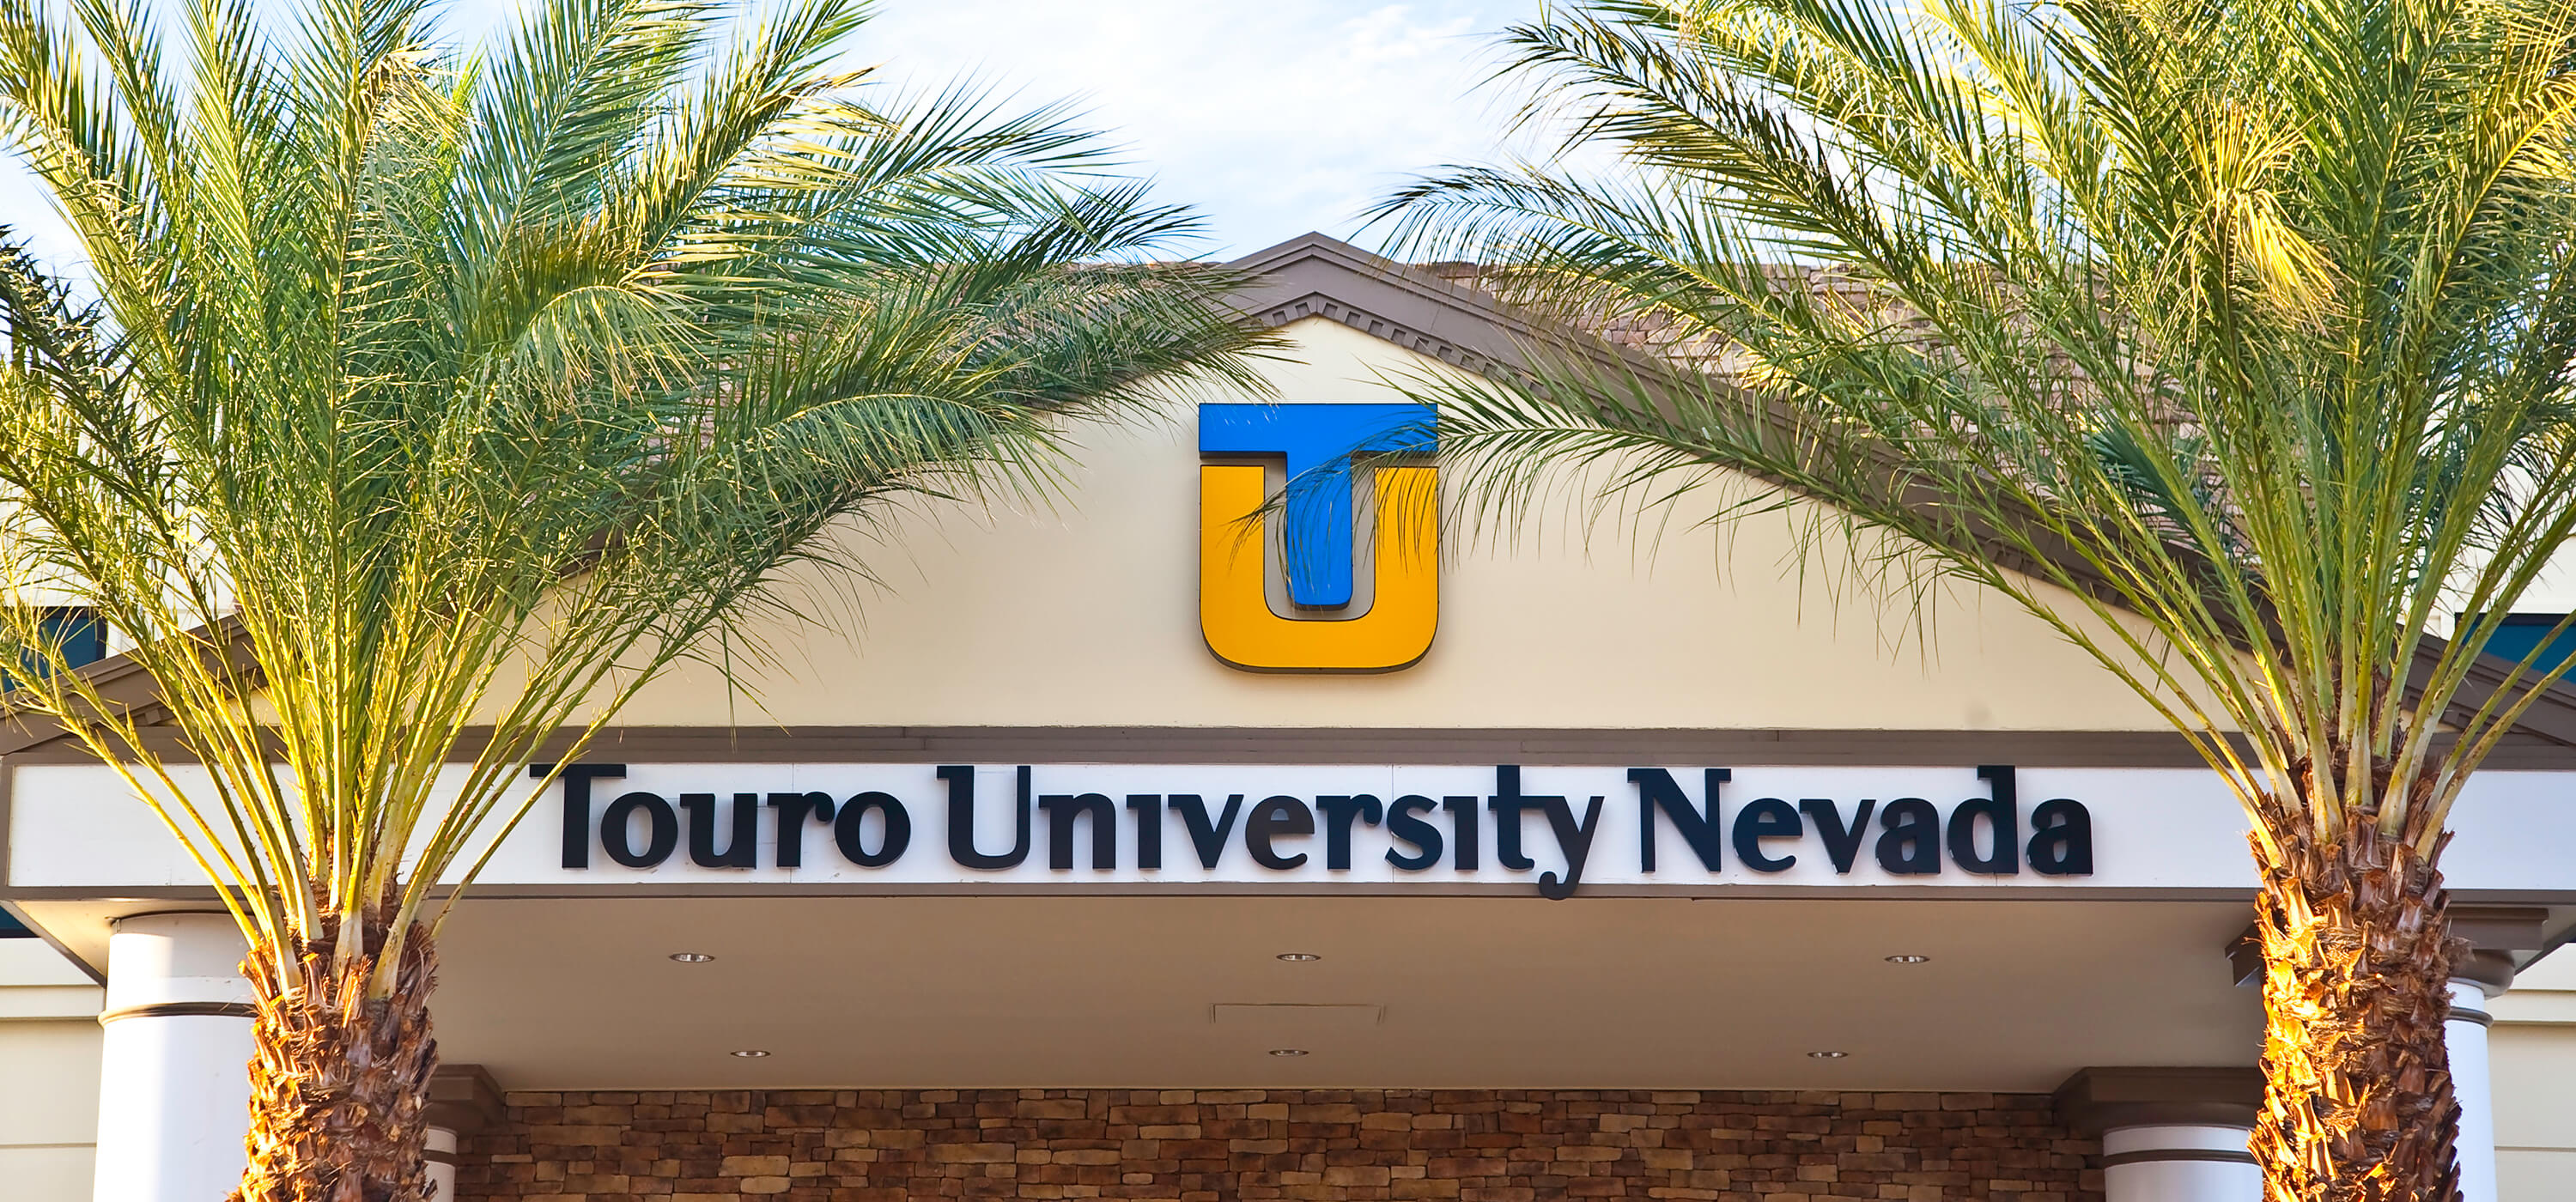 The sign located at the entrance to Touro Nevada.